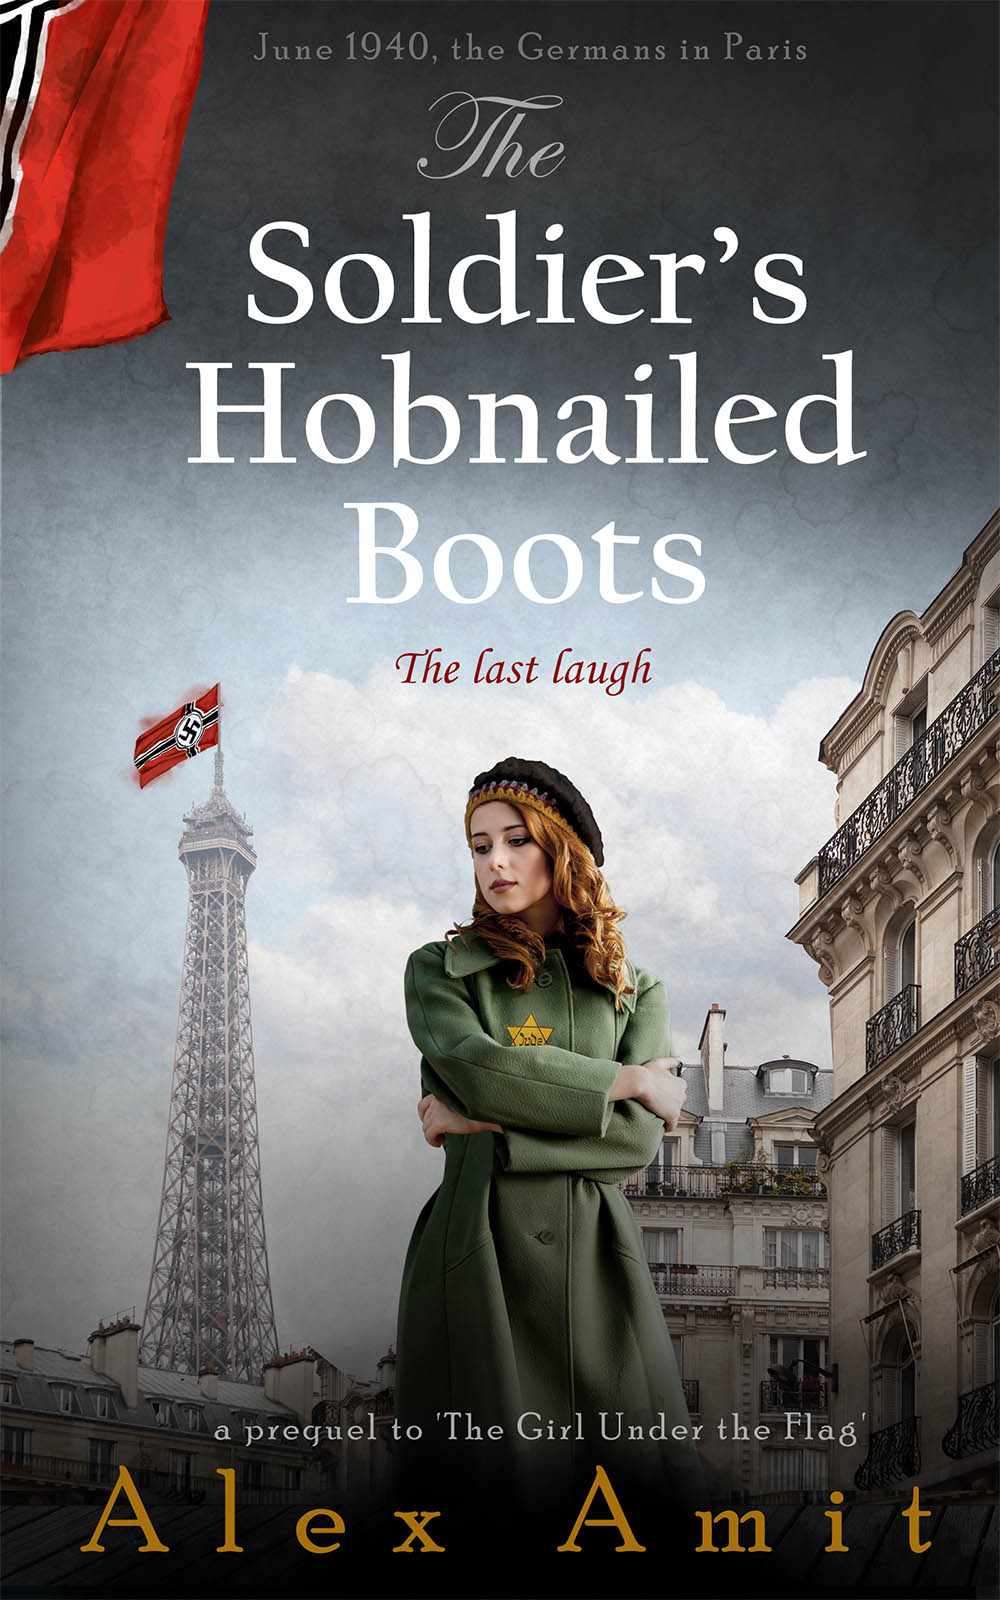 The Soldier's Hobnailed Boots